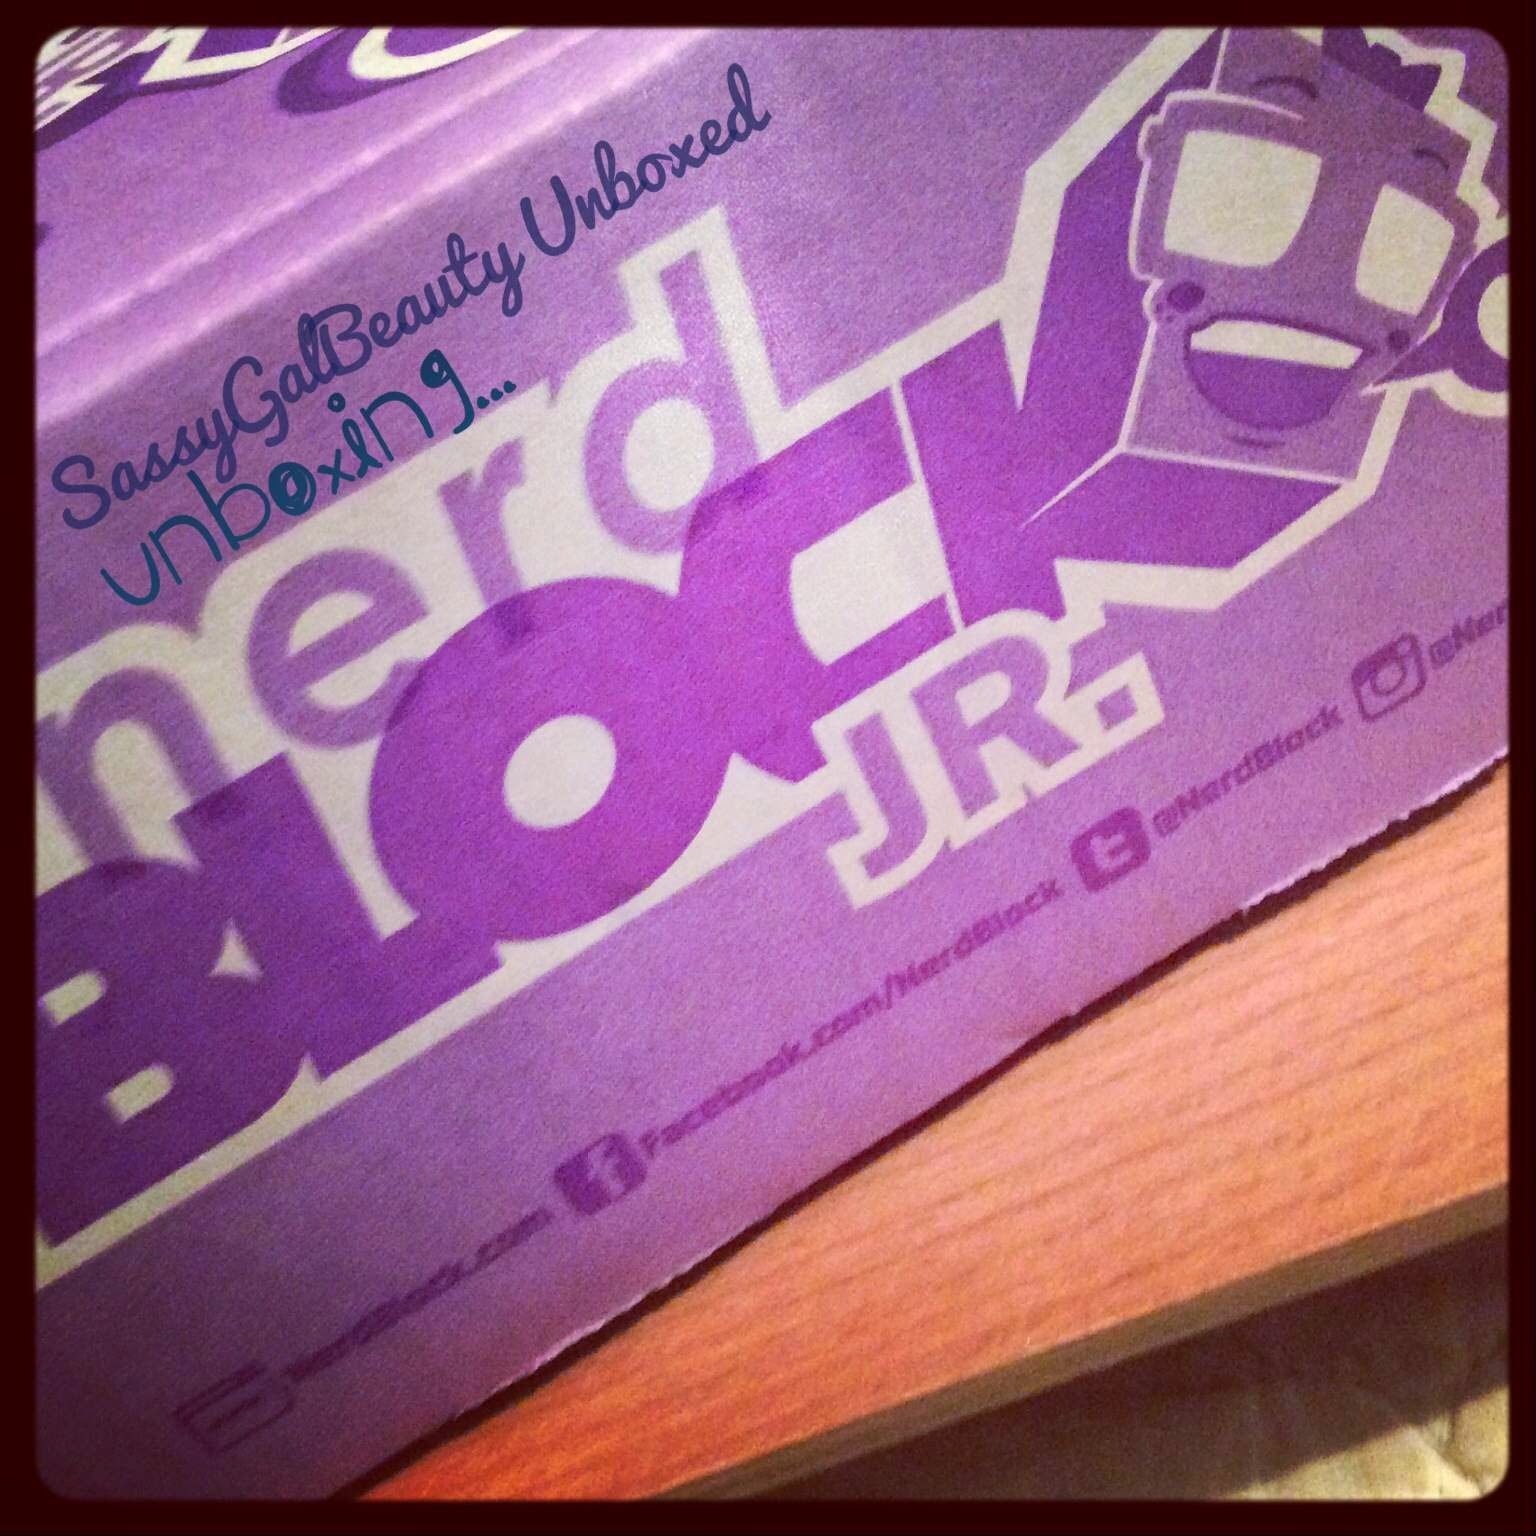 NerdBlock Jr. For Girls